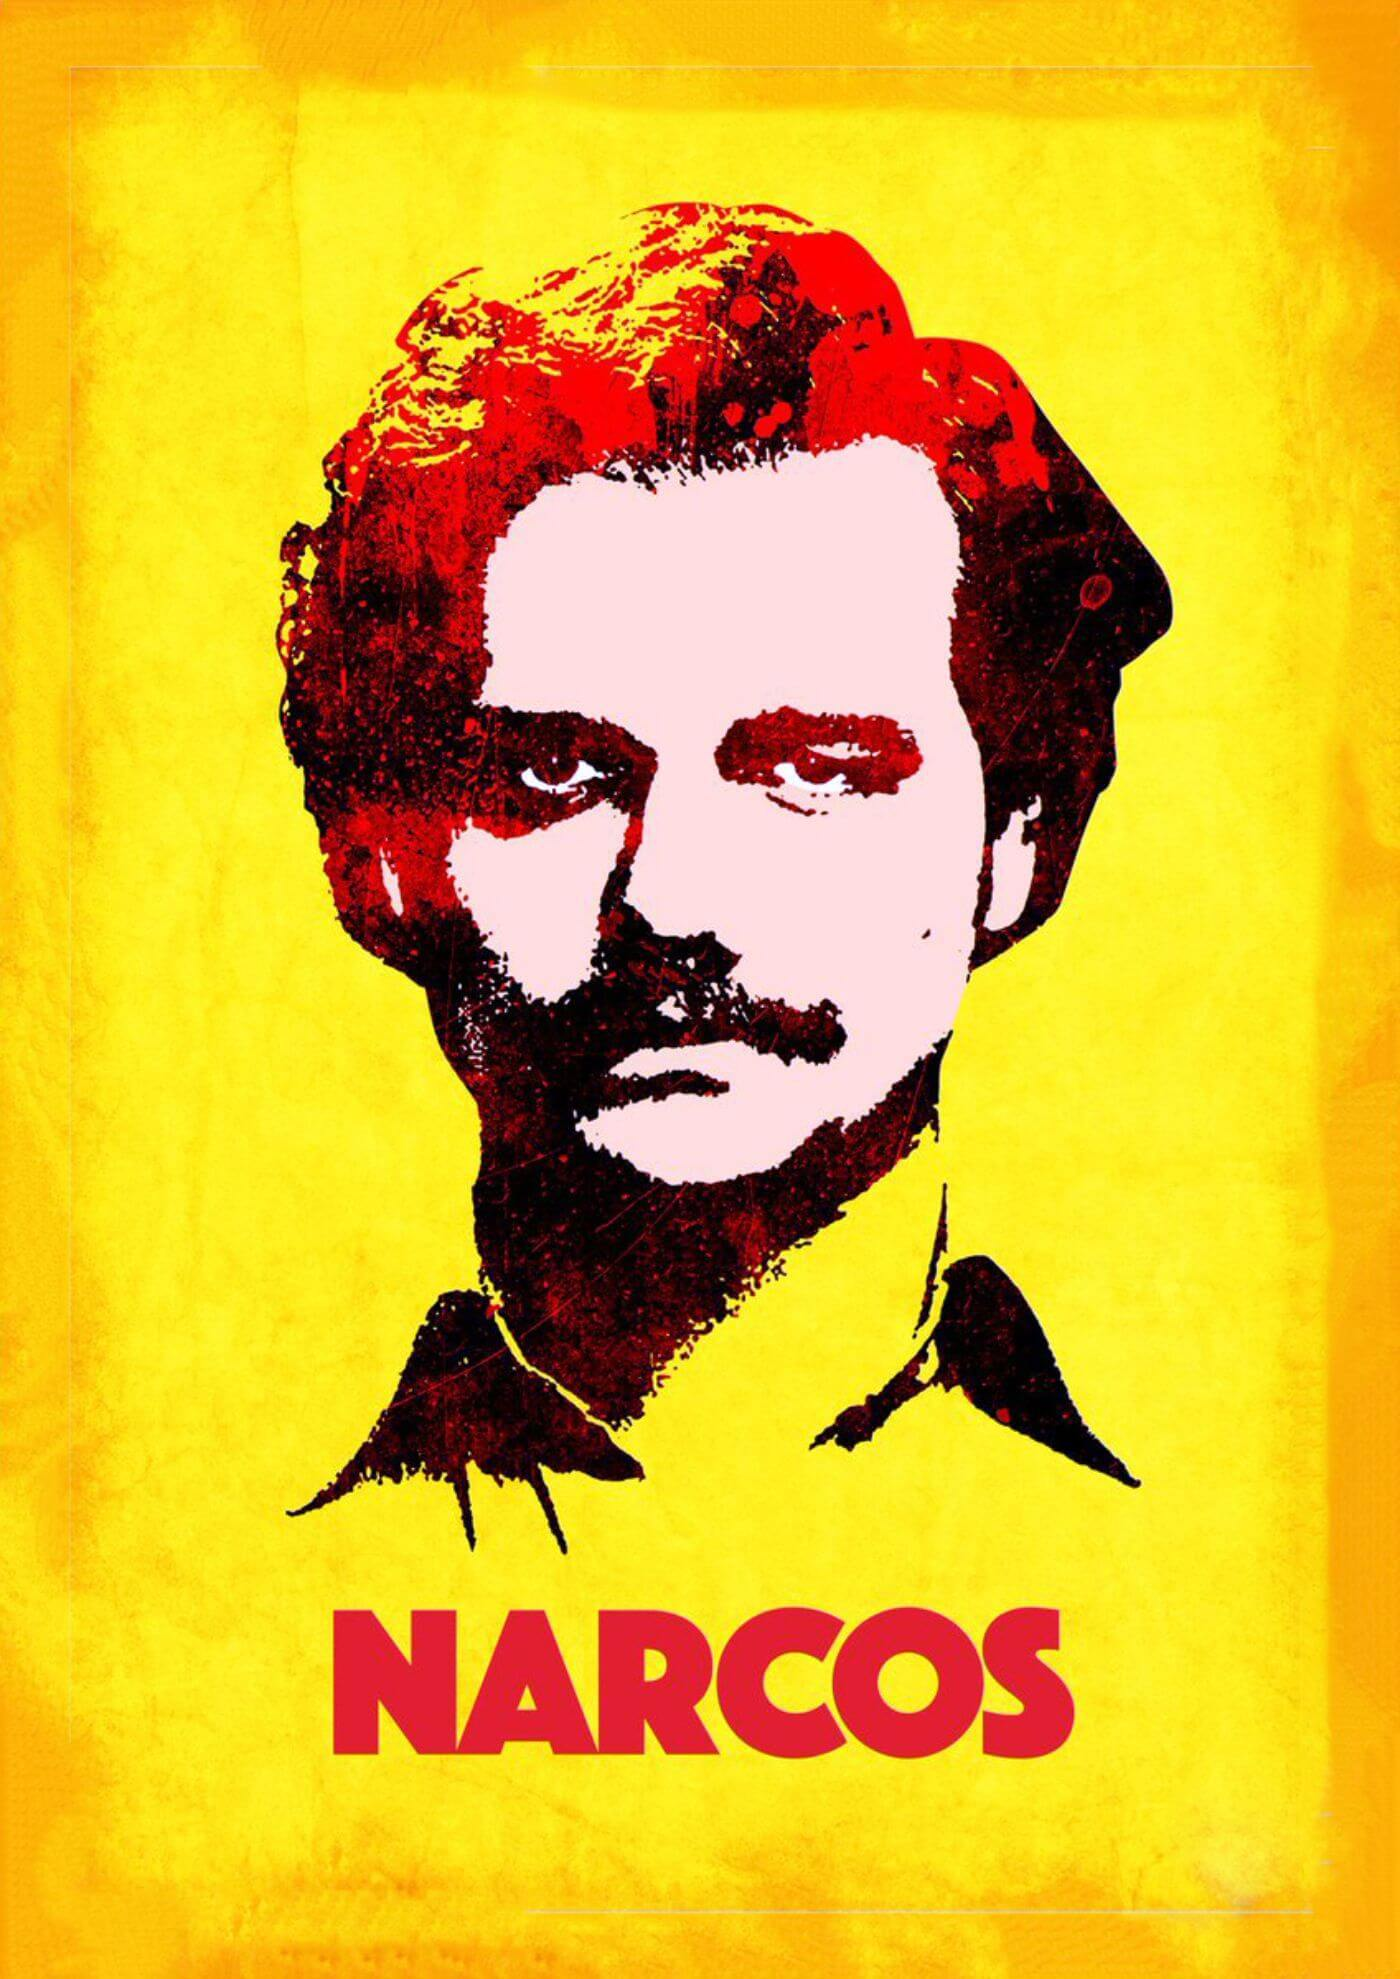 Narcos - Pablo Escobar - Netflix TV Show Pop Art Poster - Framed Prints